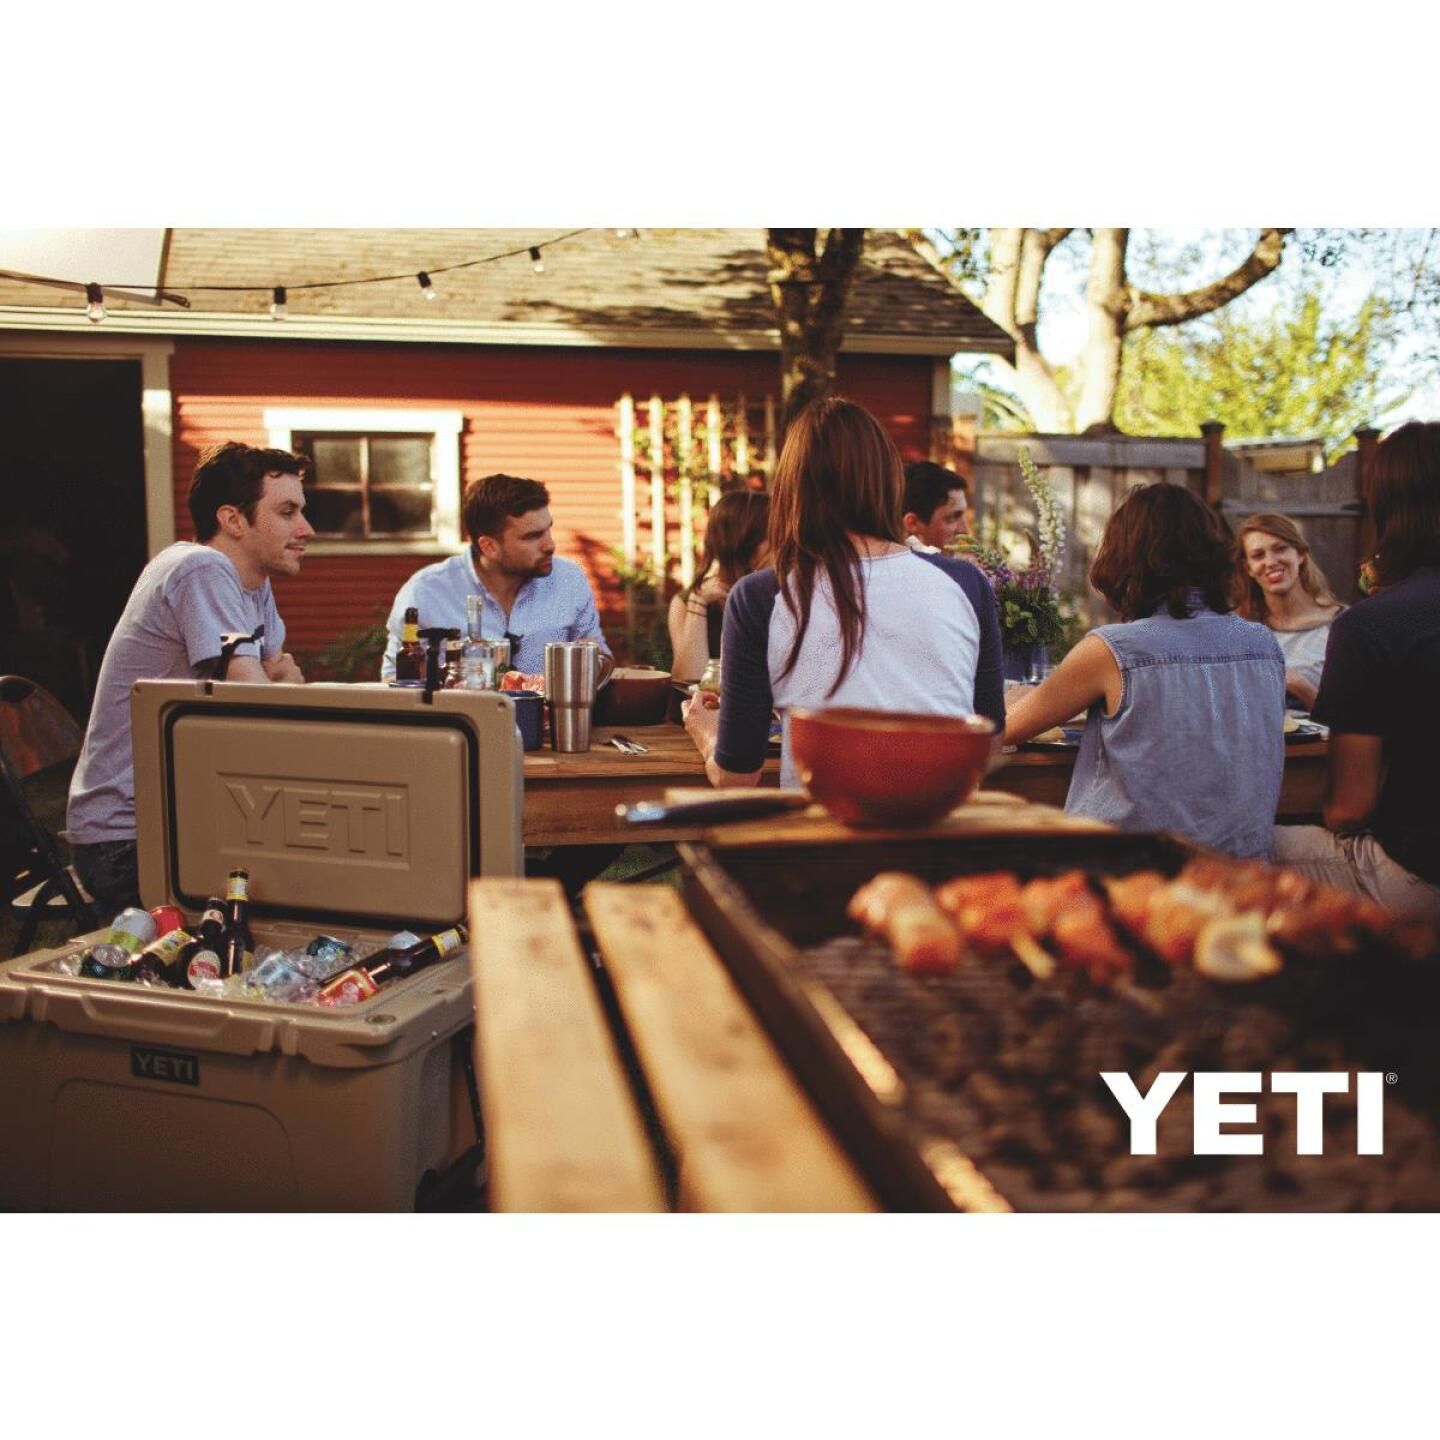 Yeti Tundra 45, 28-Can Cooler, Tan Image 4